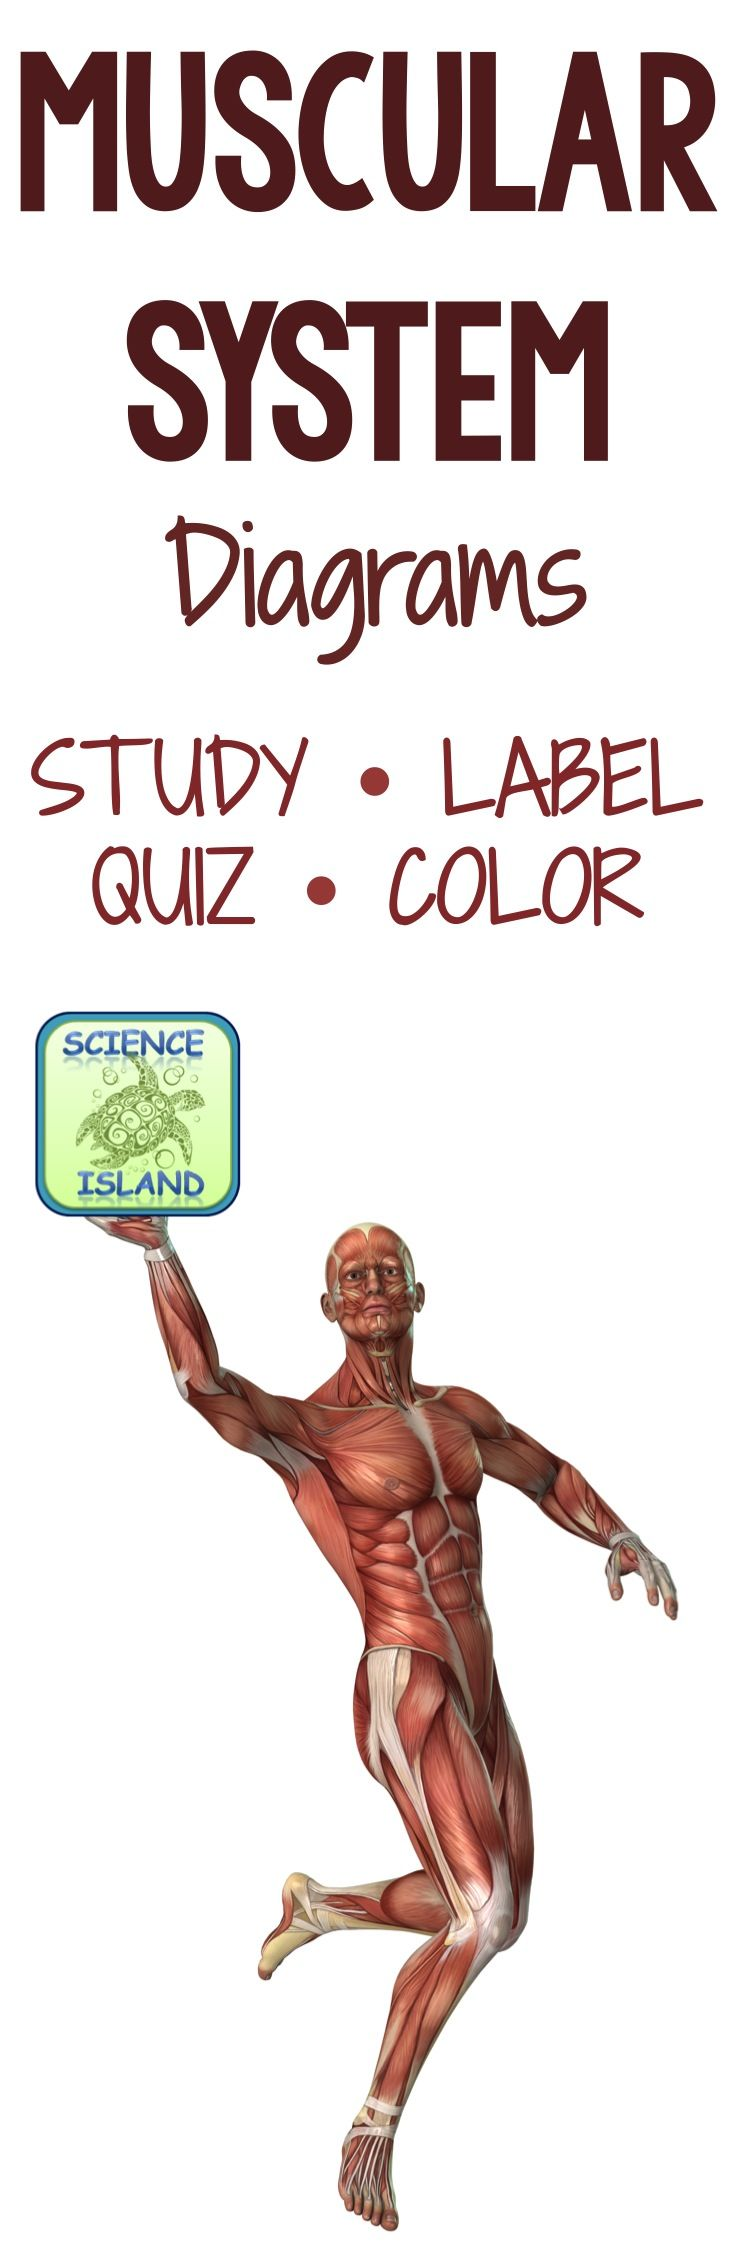 Muscular System Diagrams: Study, Label, Quiz & Color | Science for ...